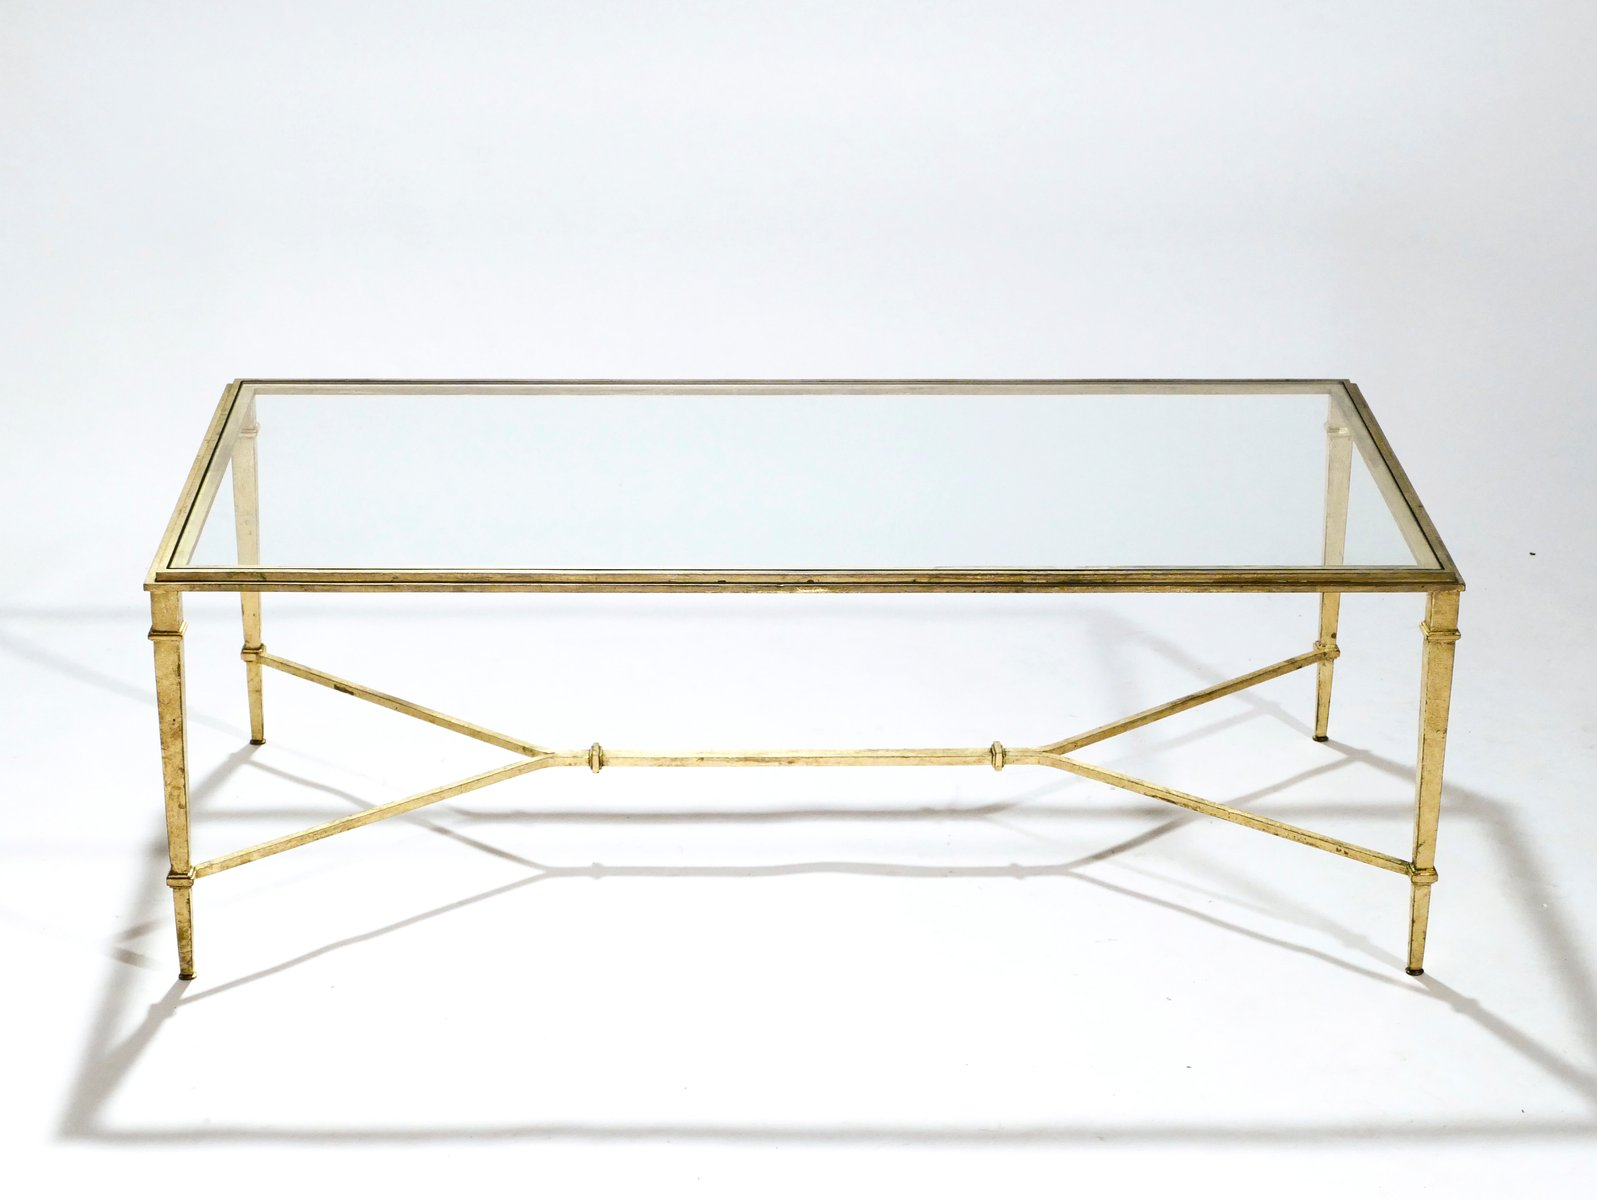 Golden wrought iron coffee table by robert thibier 1960s